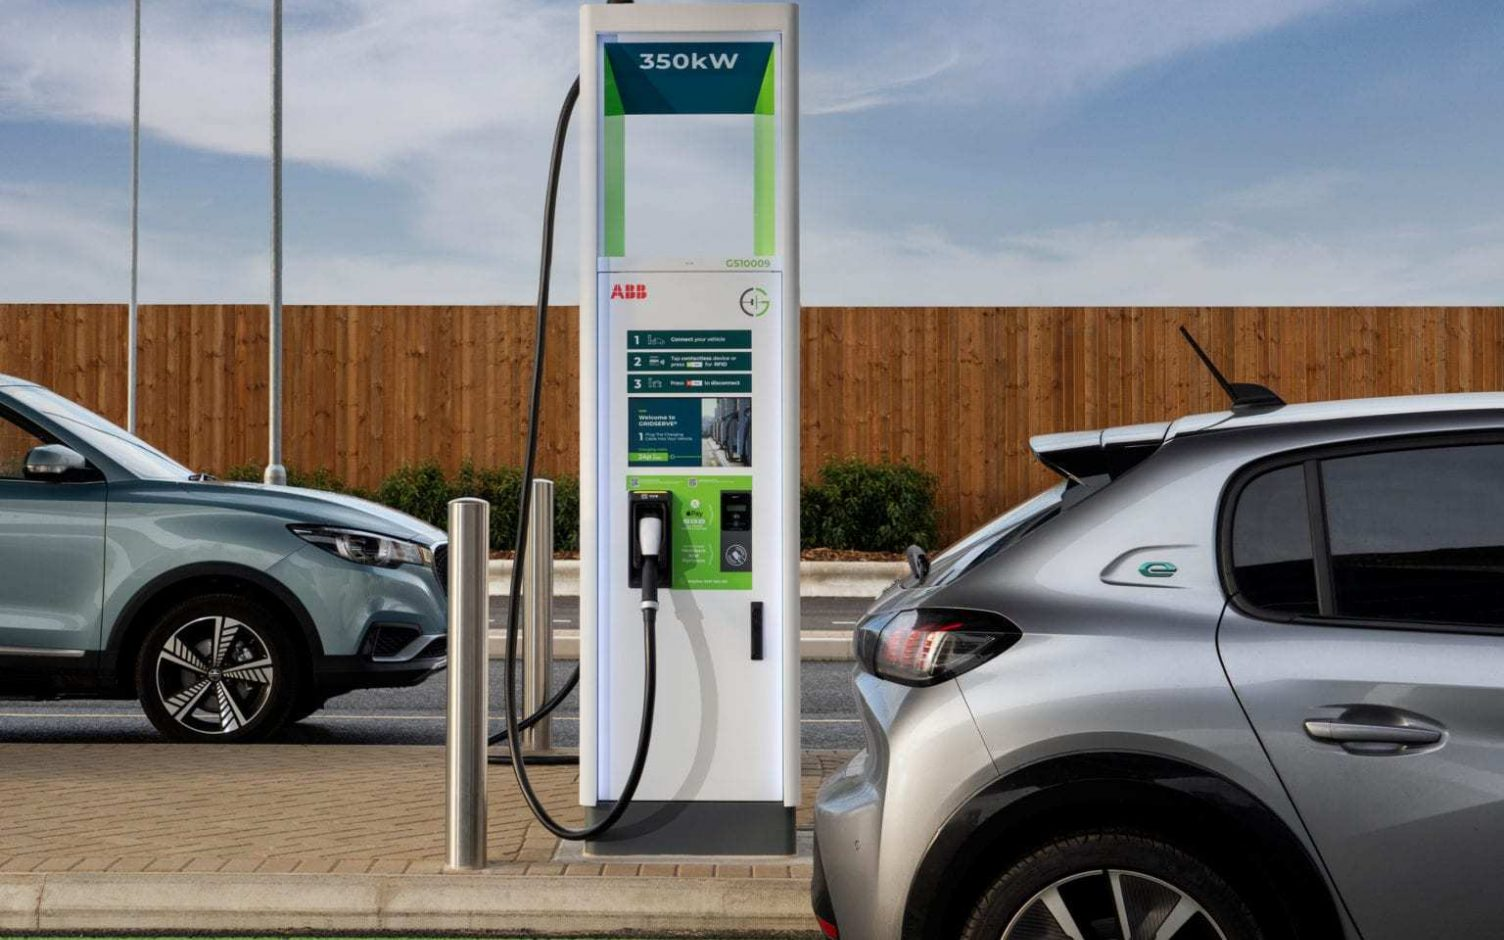 The GRIDSERVE Electric Highway was launched last week, bringing together the Electric Forecourts, Electric Hubs and Electric Highway. Image: GRIDSERVE